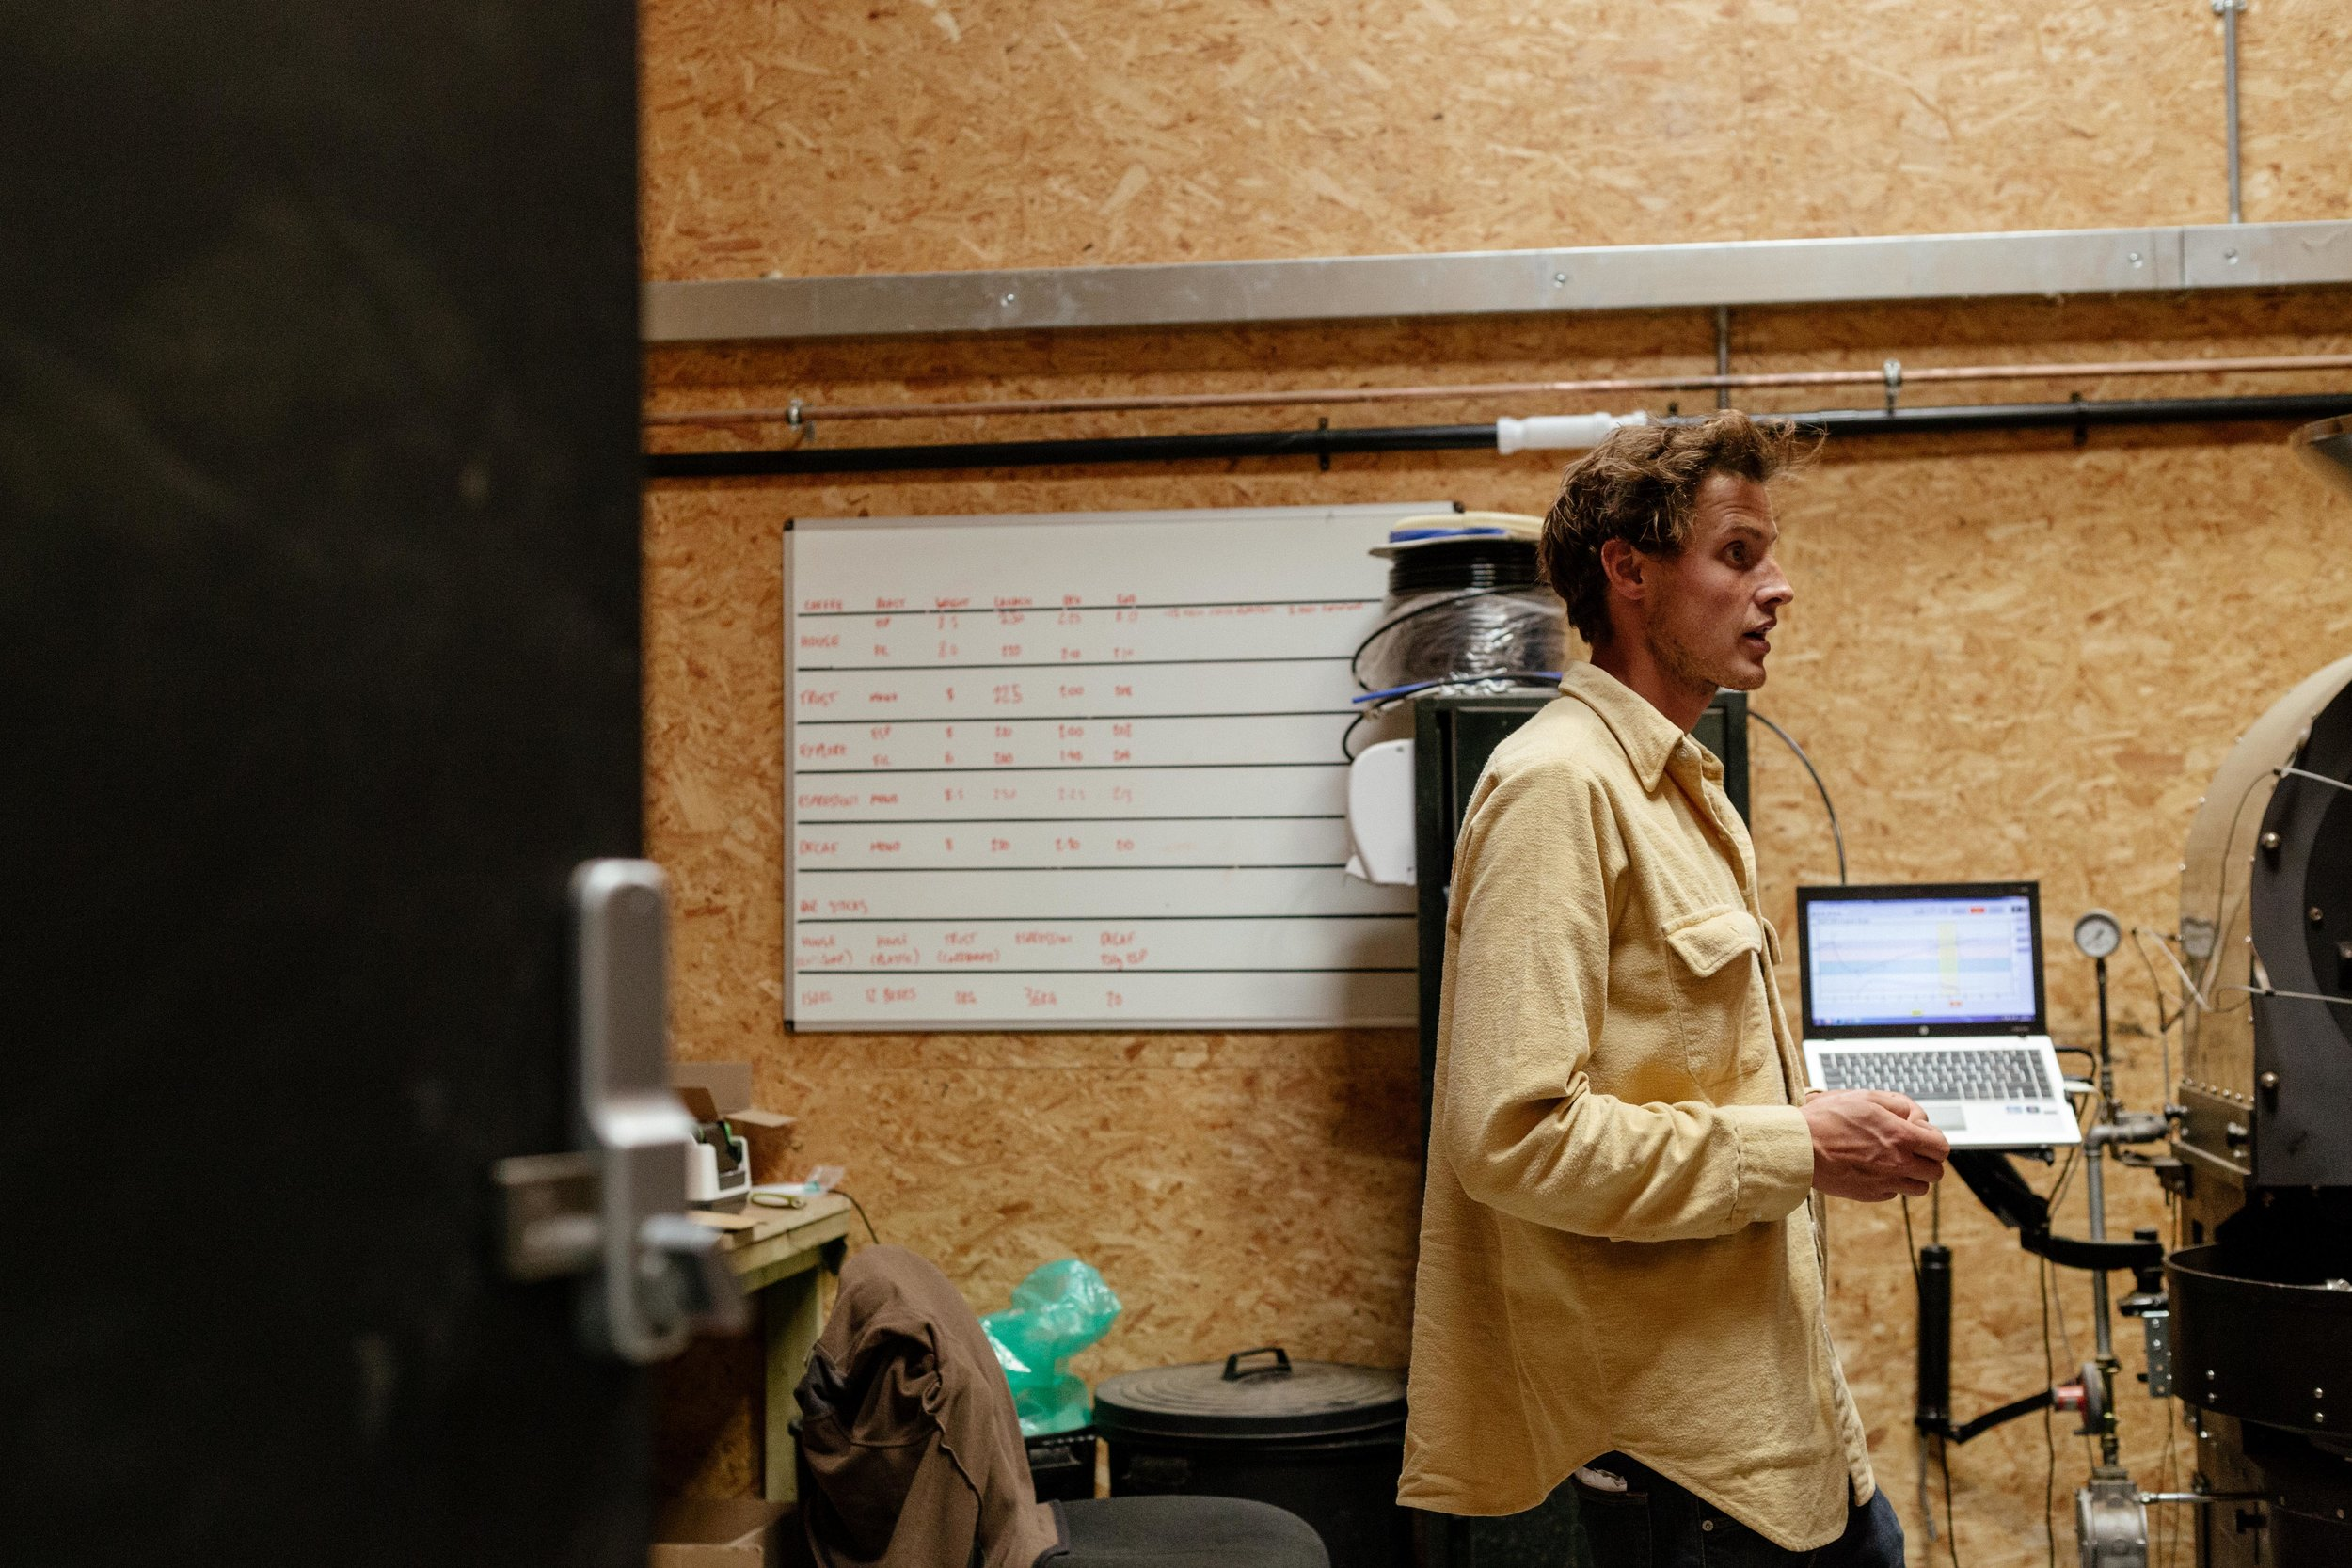 Rich, owner of Yallah Coffee Roasters, stands amongst machines and gadgets in the barn.